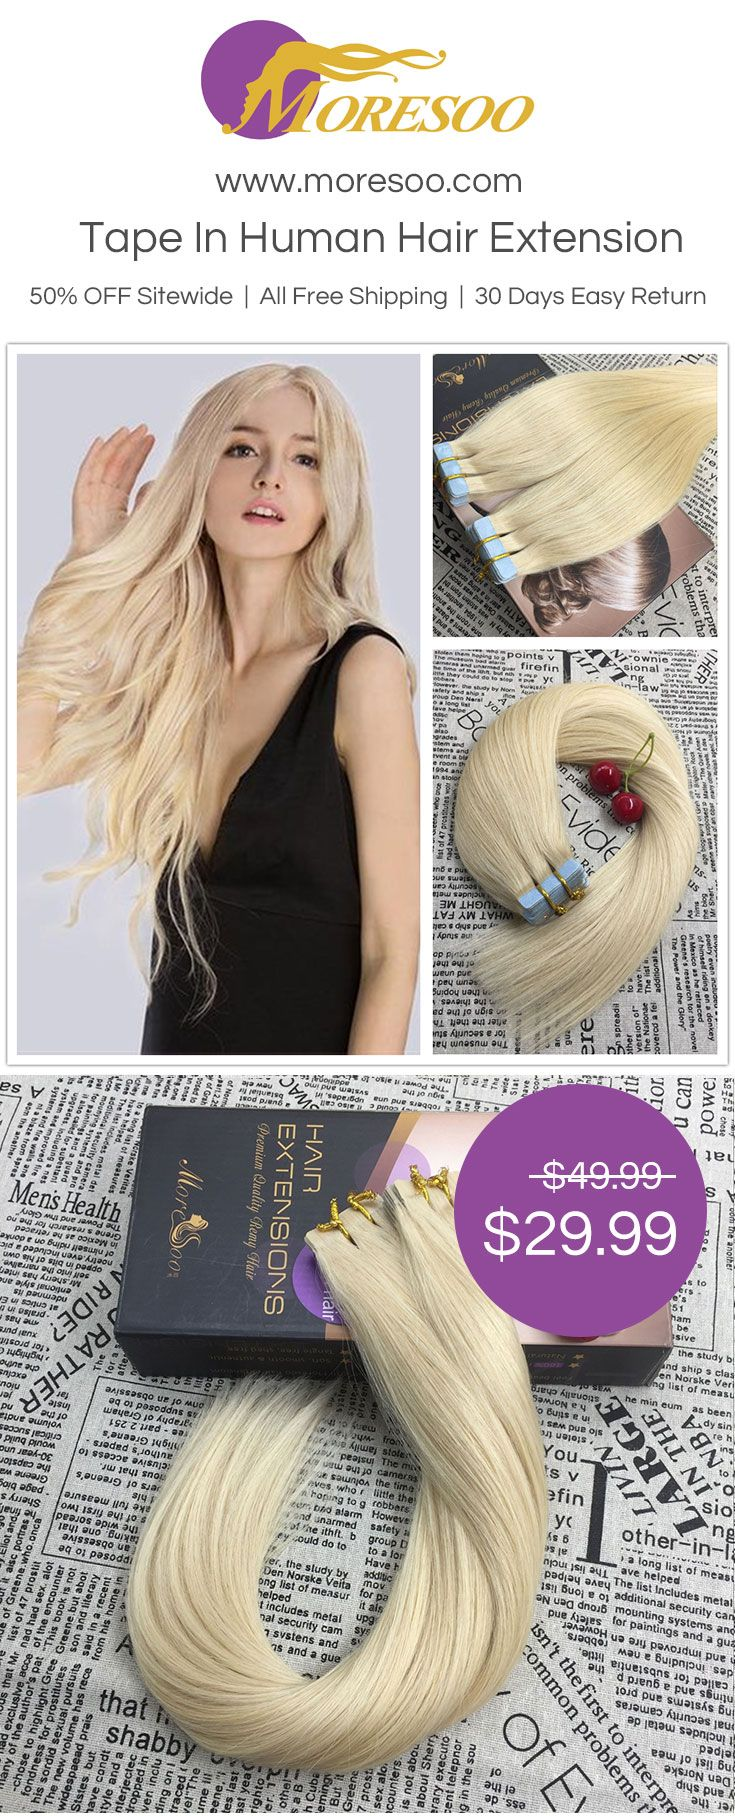 Moresoo Clip In Human Hair Extension At Moresoo High